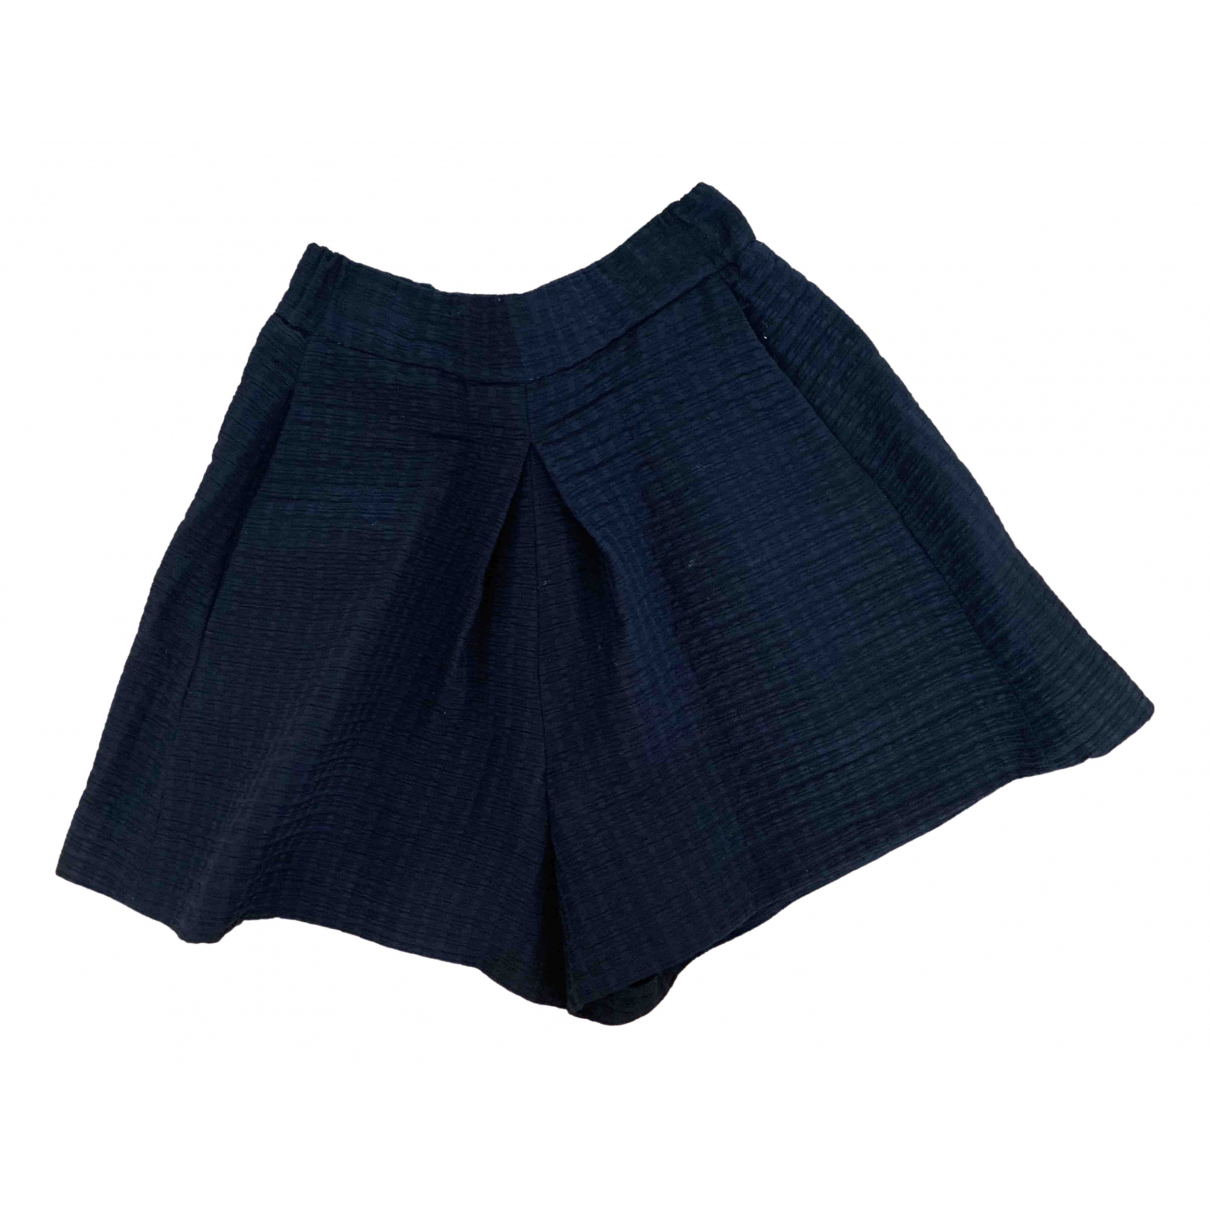 Maje Spring Summer 2019 Shorts in  Schwarz Polyester